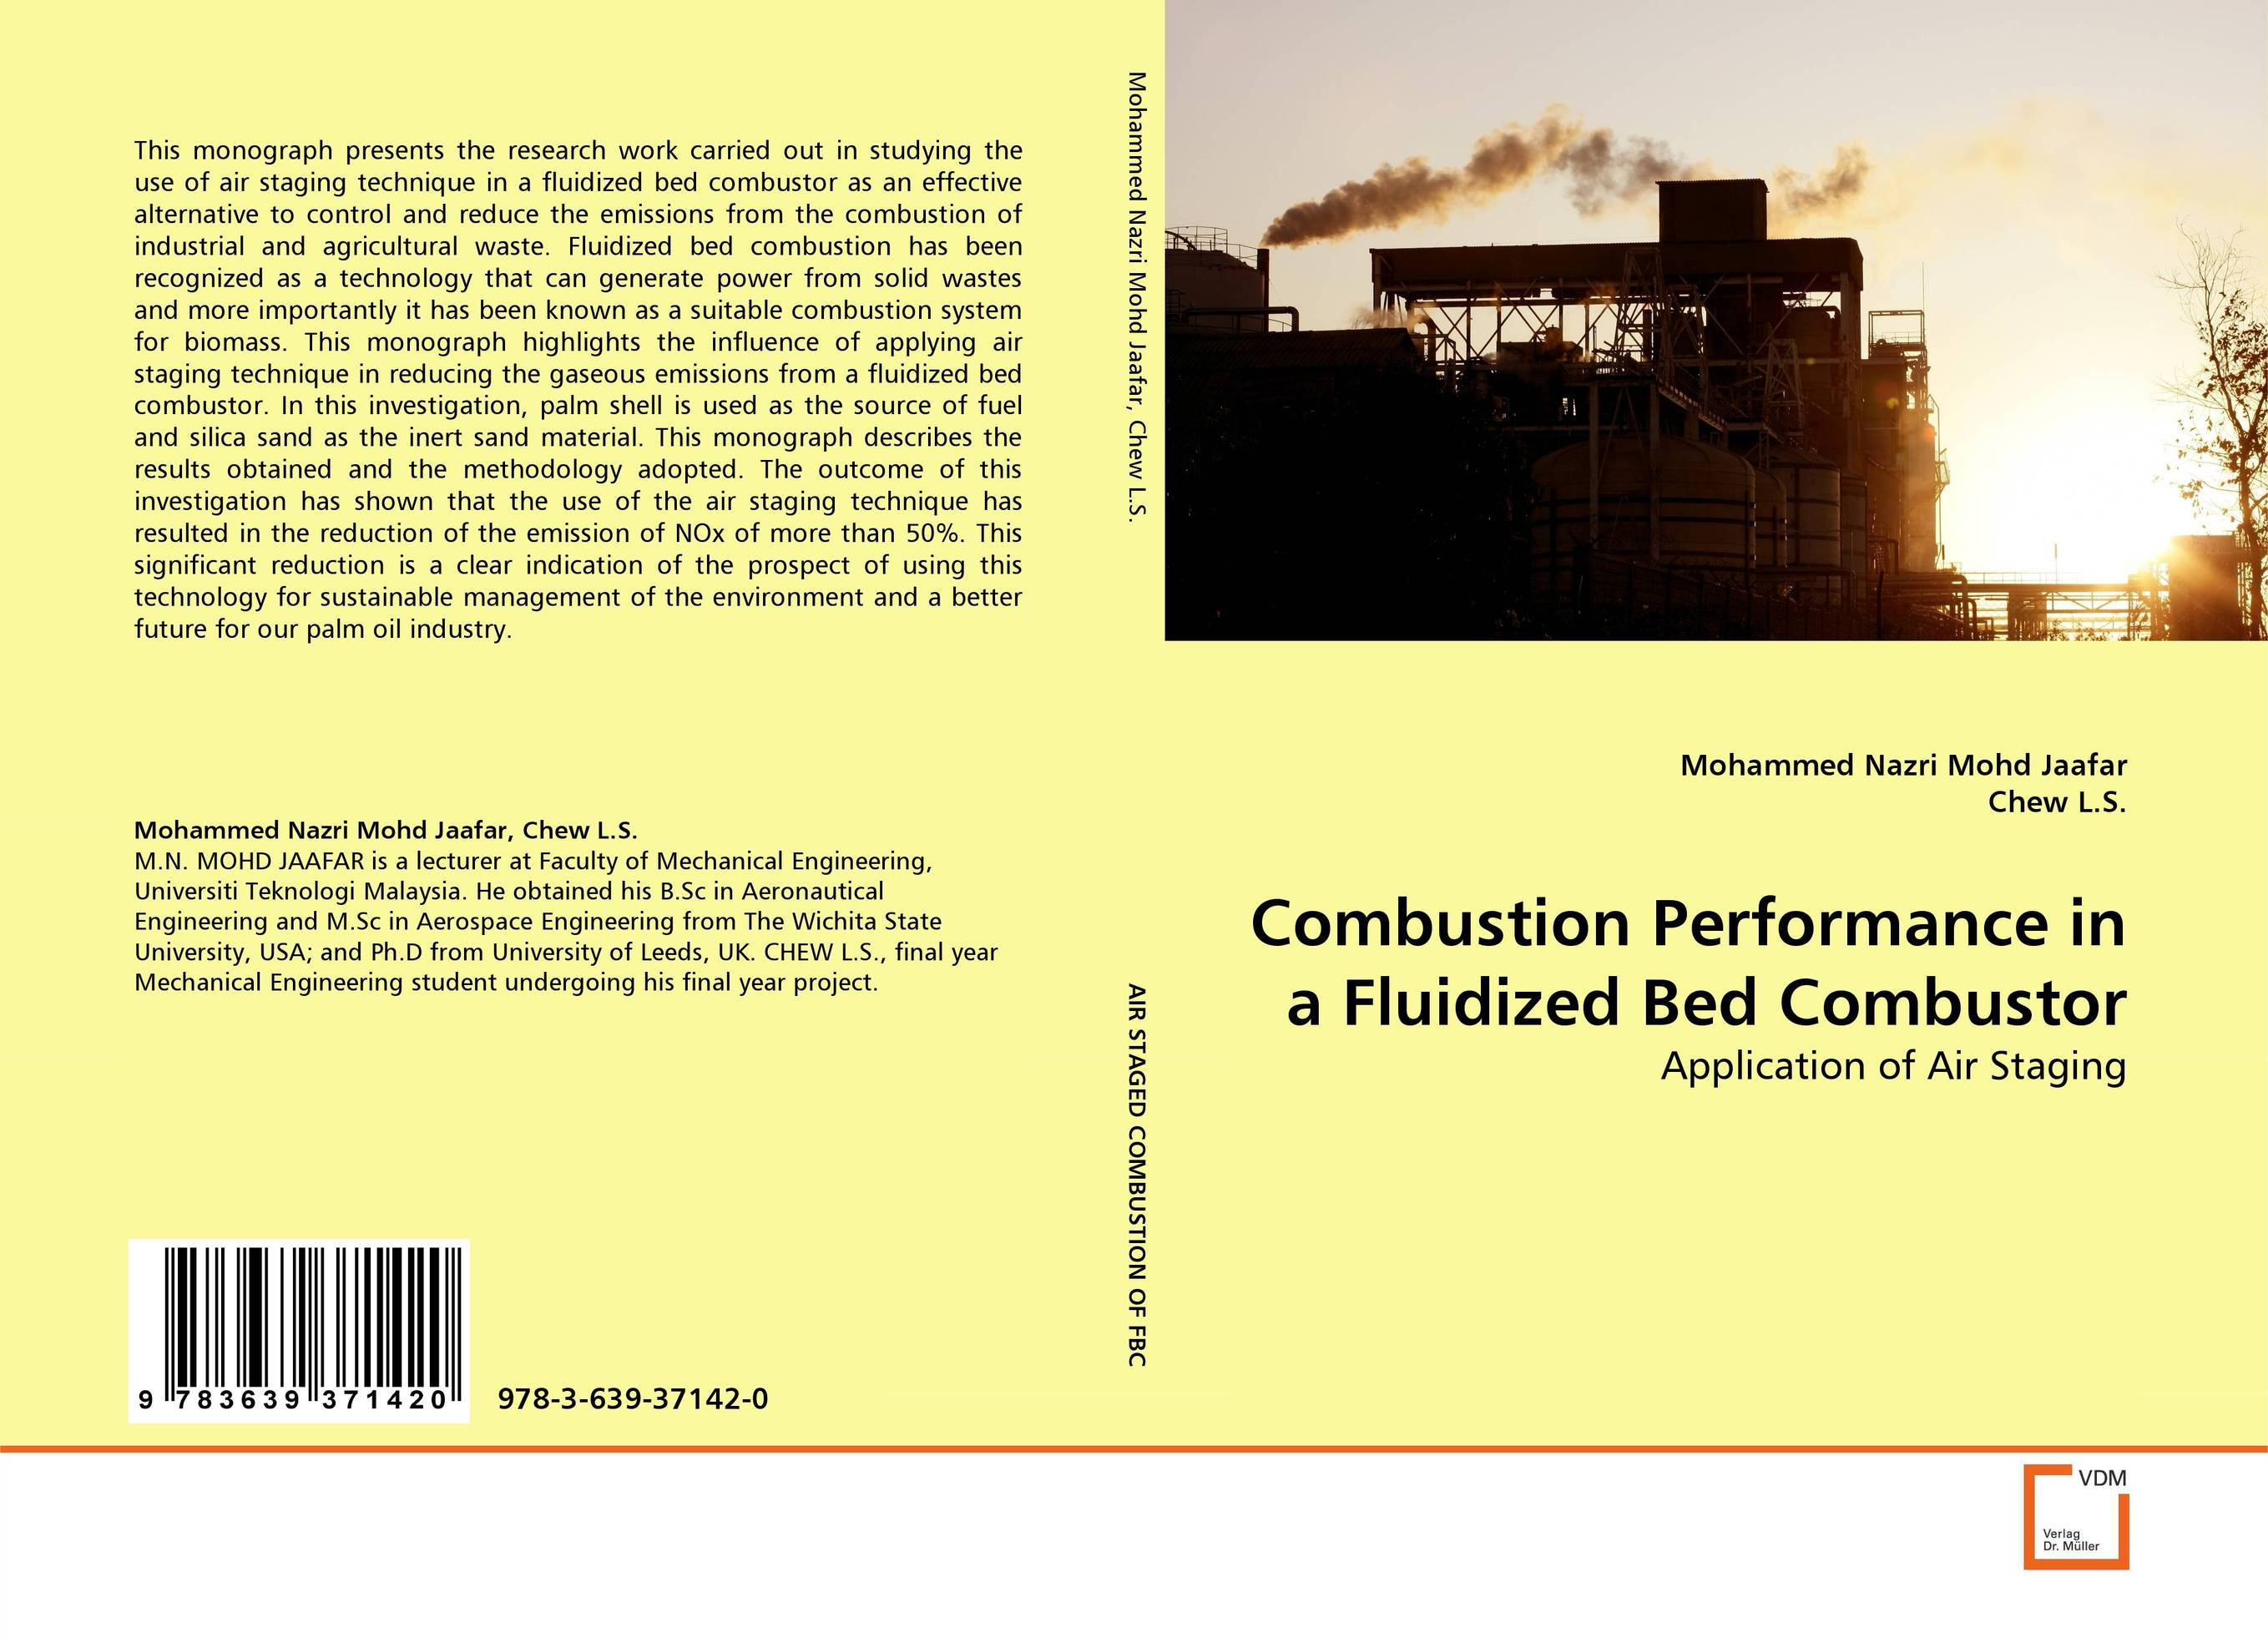 Combustion Performance in a Fluidized Bed Combustor utilization of palm oil mill wastes